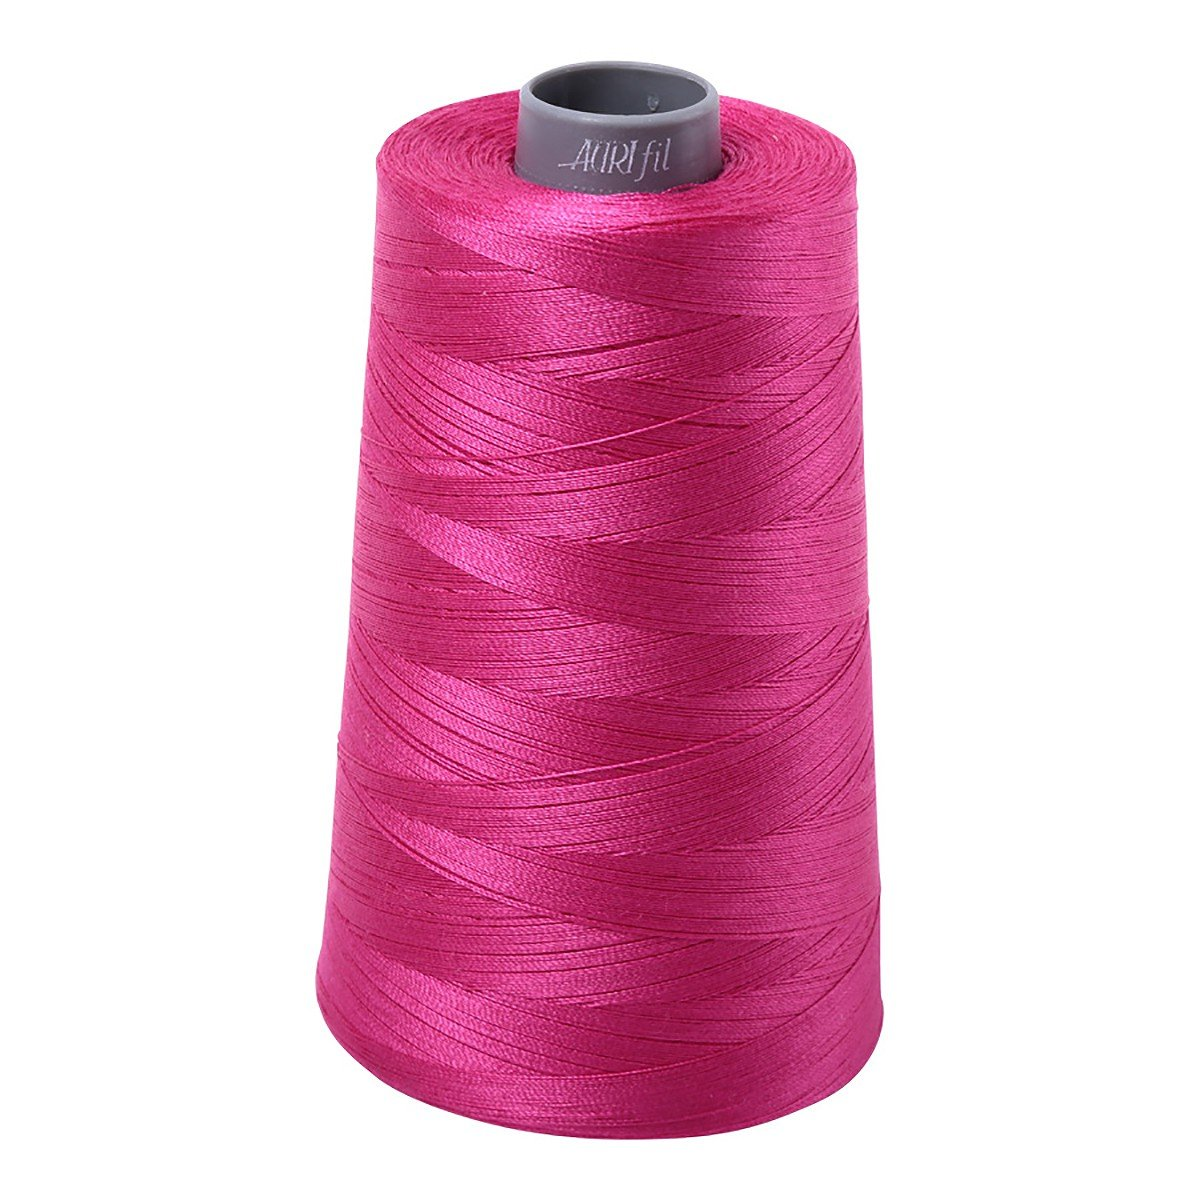 Mako (Cotton) Embroidery Thread 28wt 3609yds Fuchsia